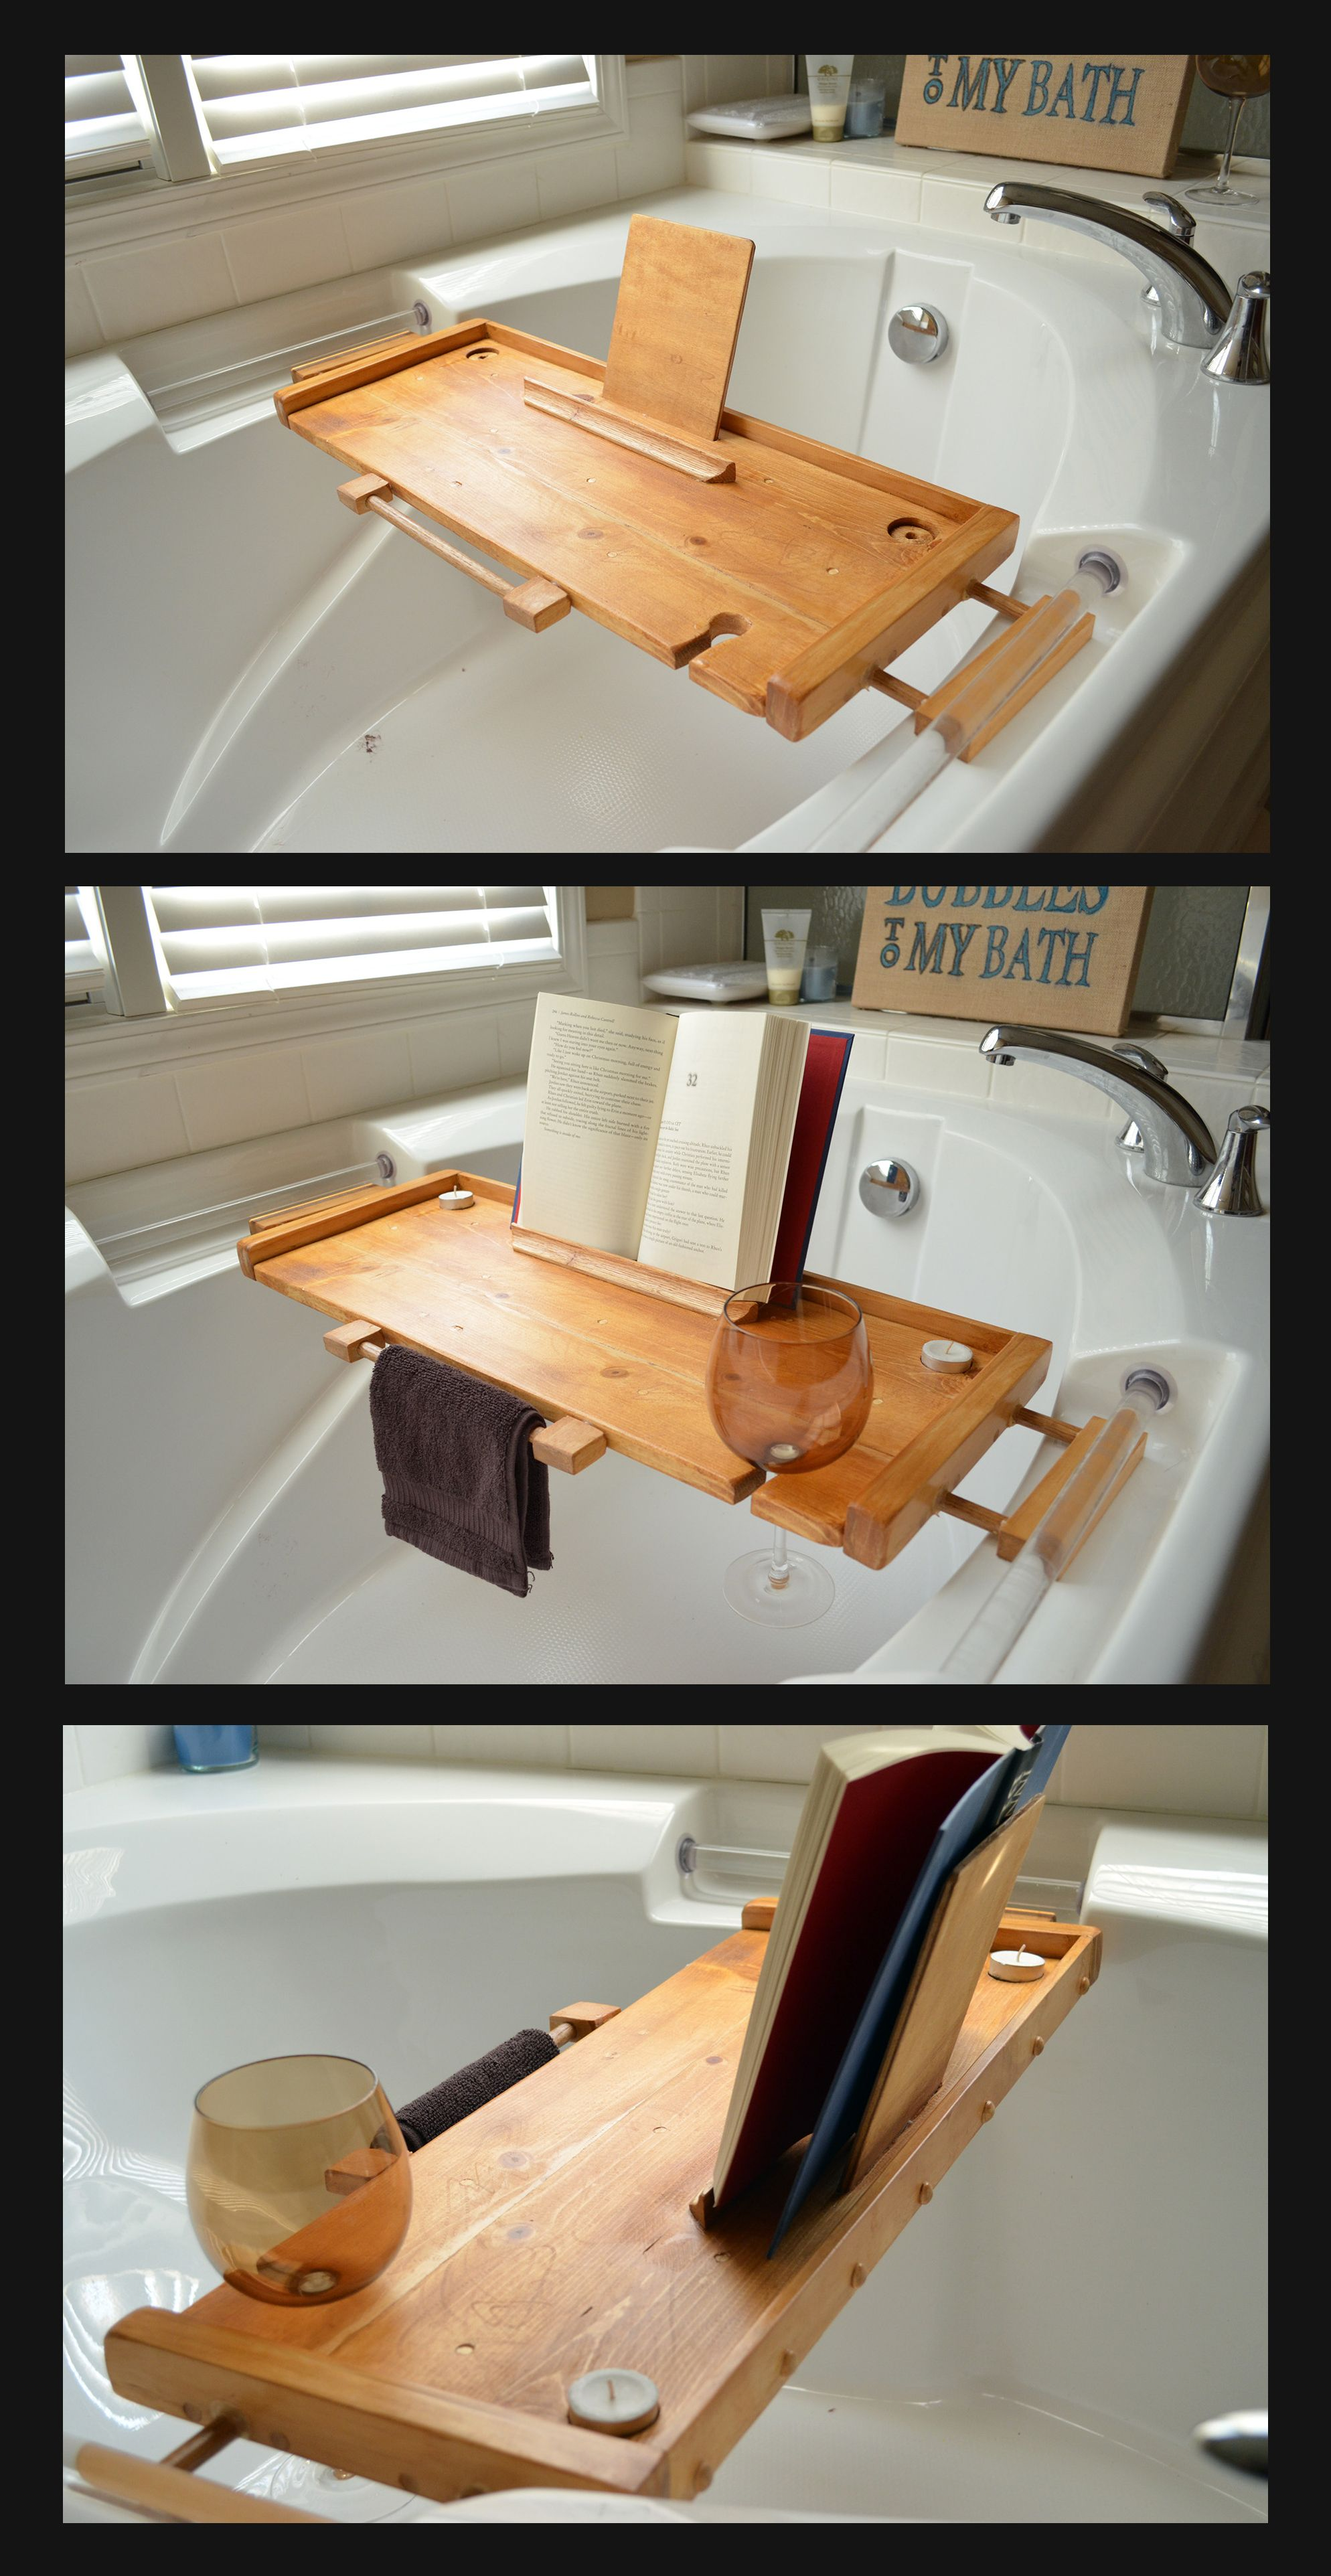 bath with white pine phone tray bridge holder bathtub solid wood ipad caddy tub handmade product rack